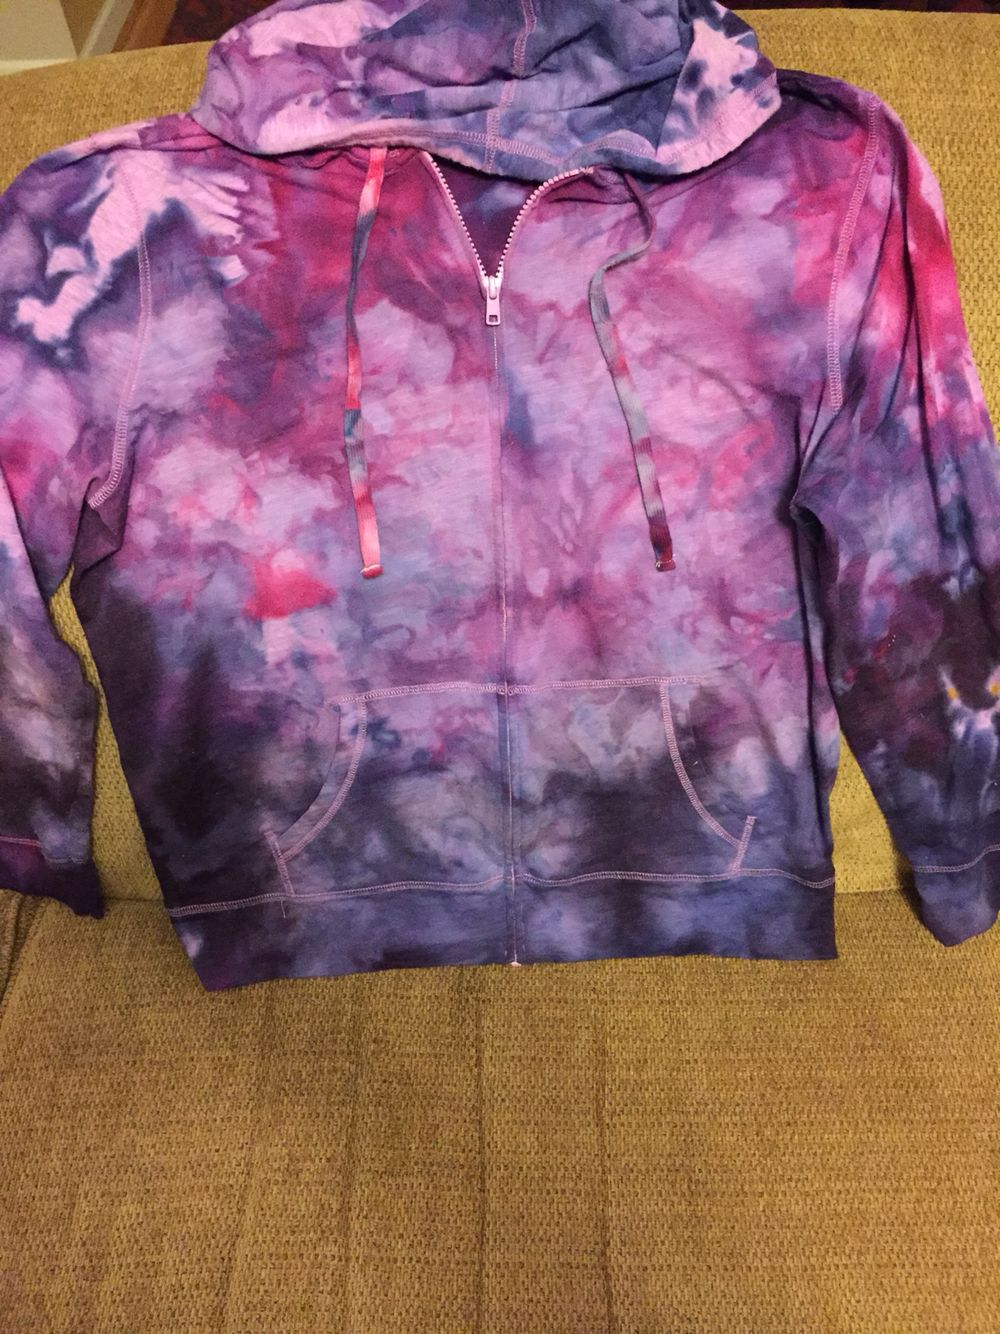 Ice Dyed Hoodie We Used Dye From Bestdye Com The Hoodie Was A Lilac Color To Start With And We Added Tie Dye Black Clothes Tie Dye T Shirts How To [ 1334 x 1000 Pixel ]